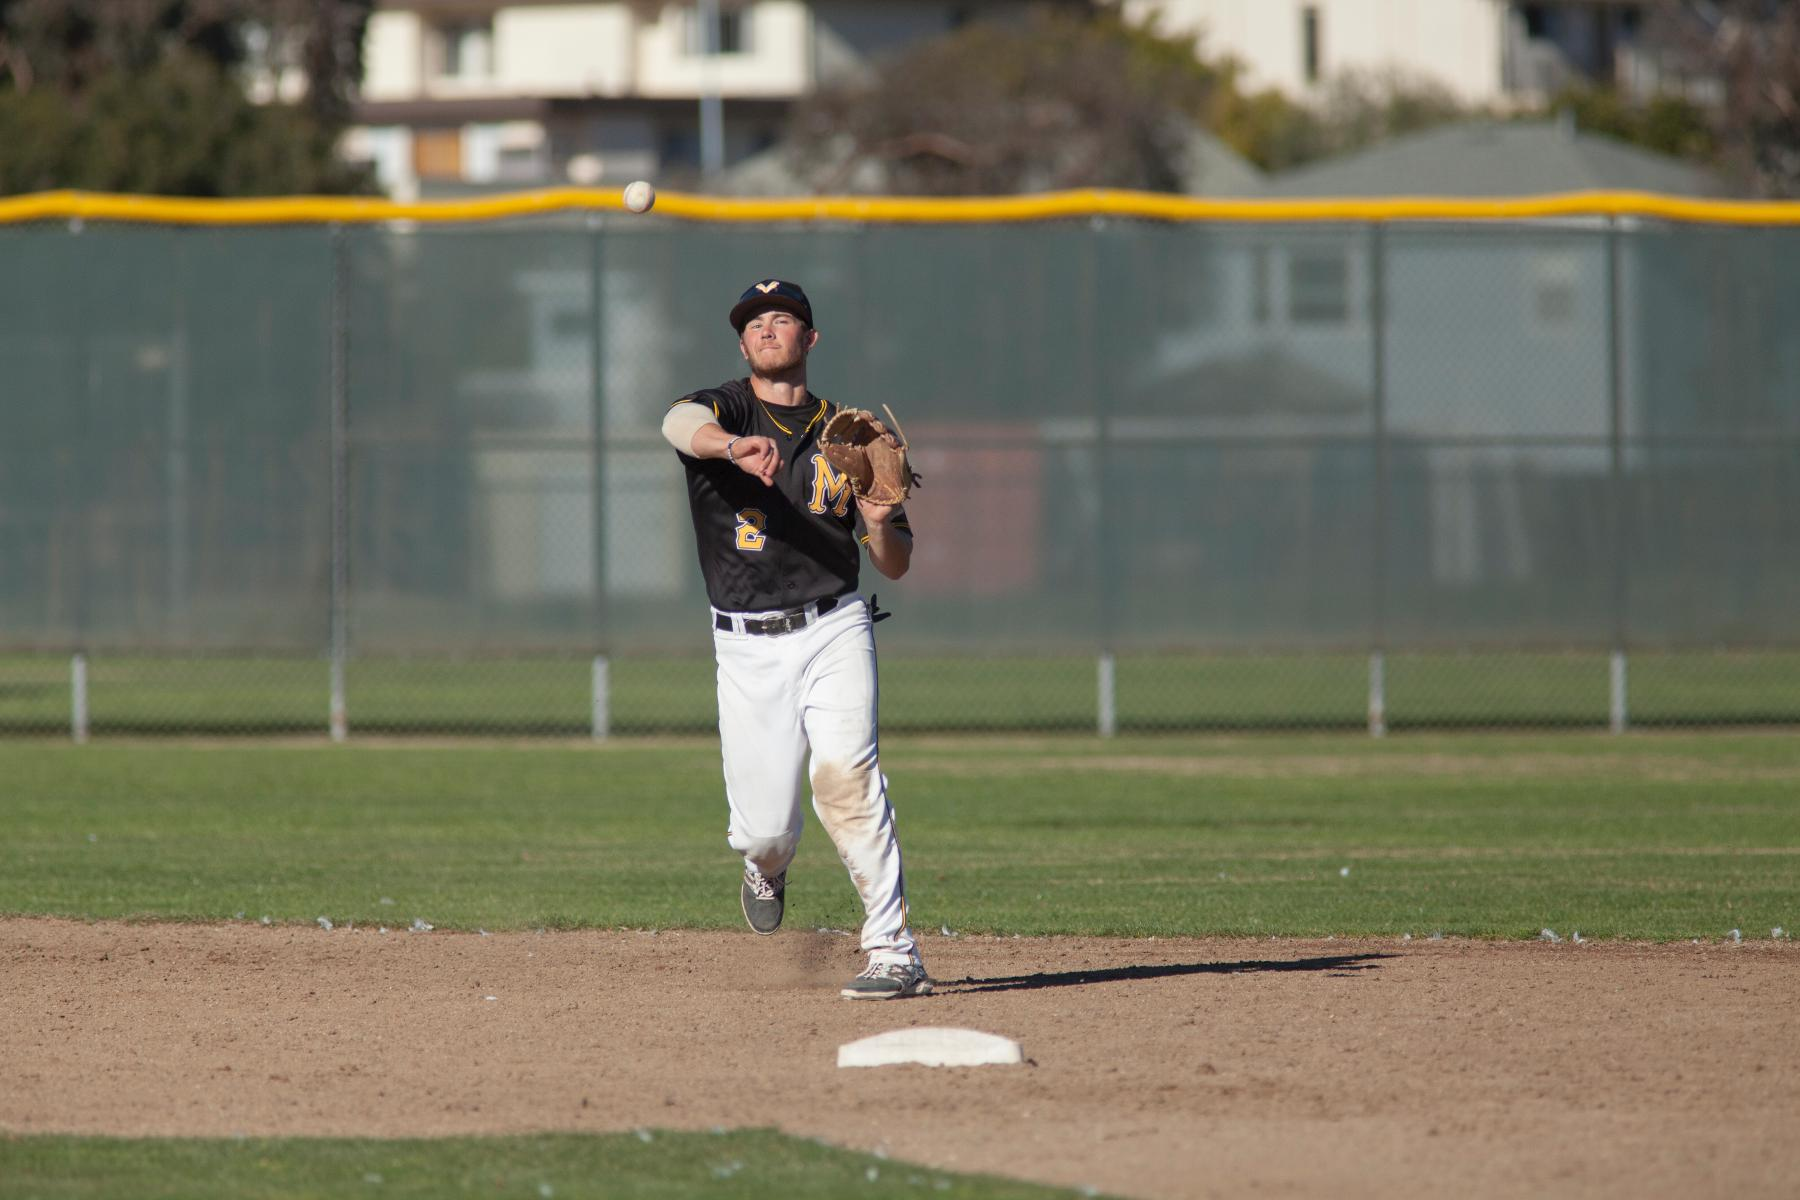 Mariners Endure Tough Day At Folsom Lake, Fall 6-5